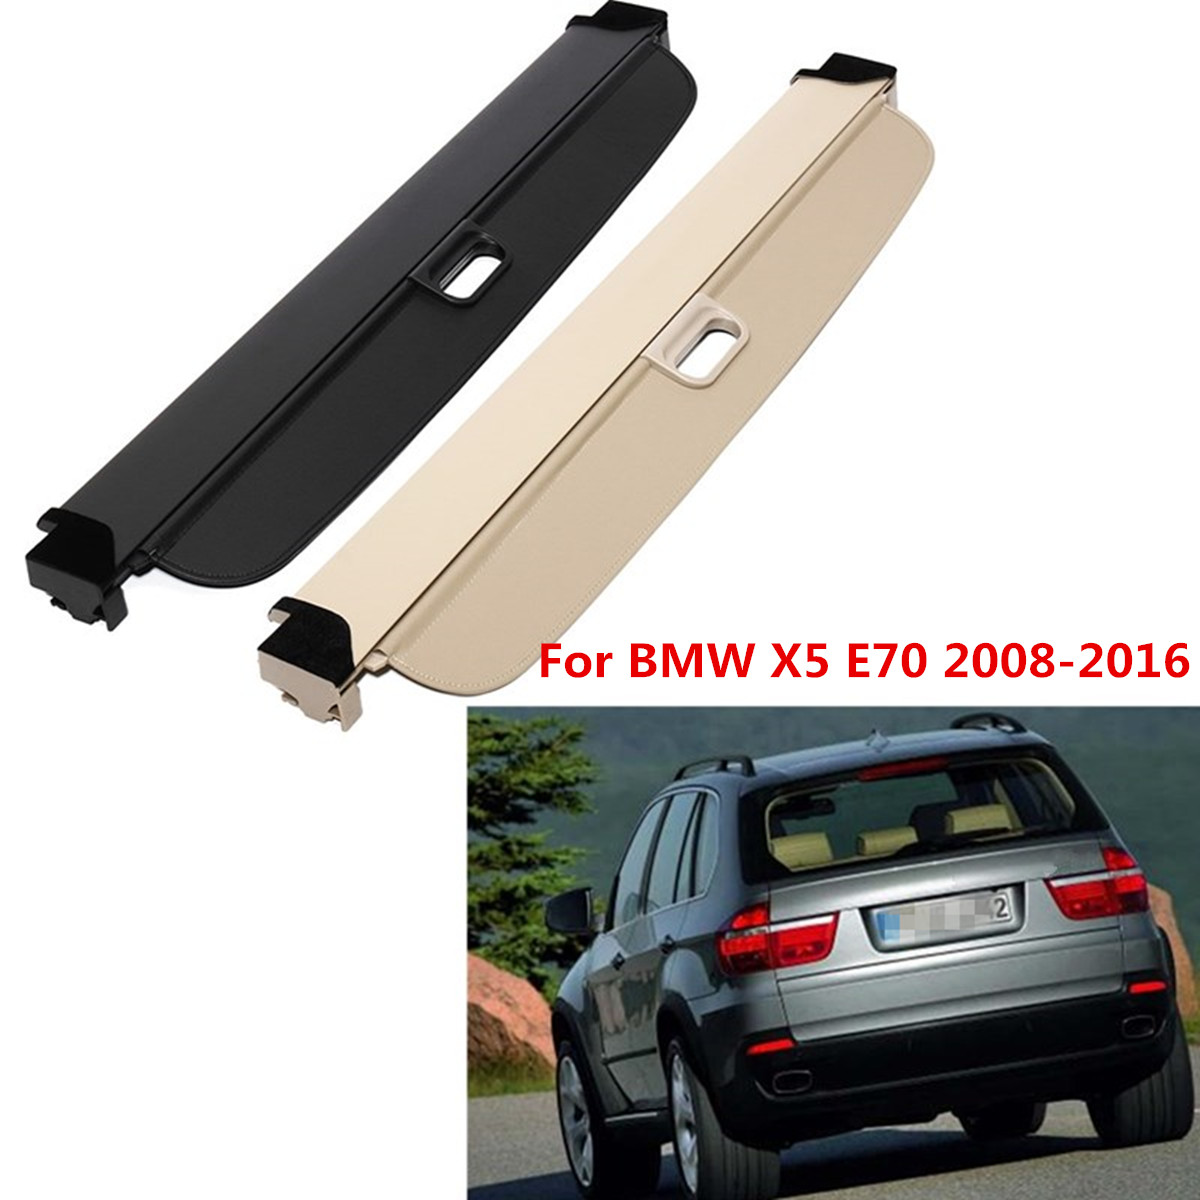 for Dodge Journey 2009-2019 5-Pass Rear Trunk Retractable Cargo Luggage Cover